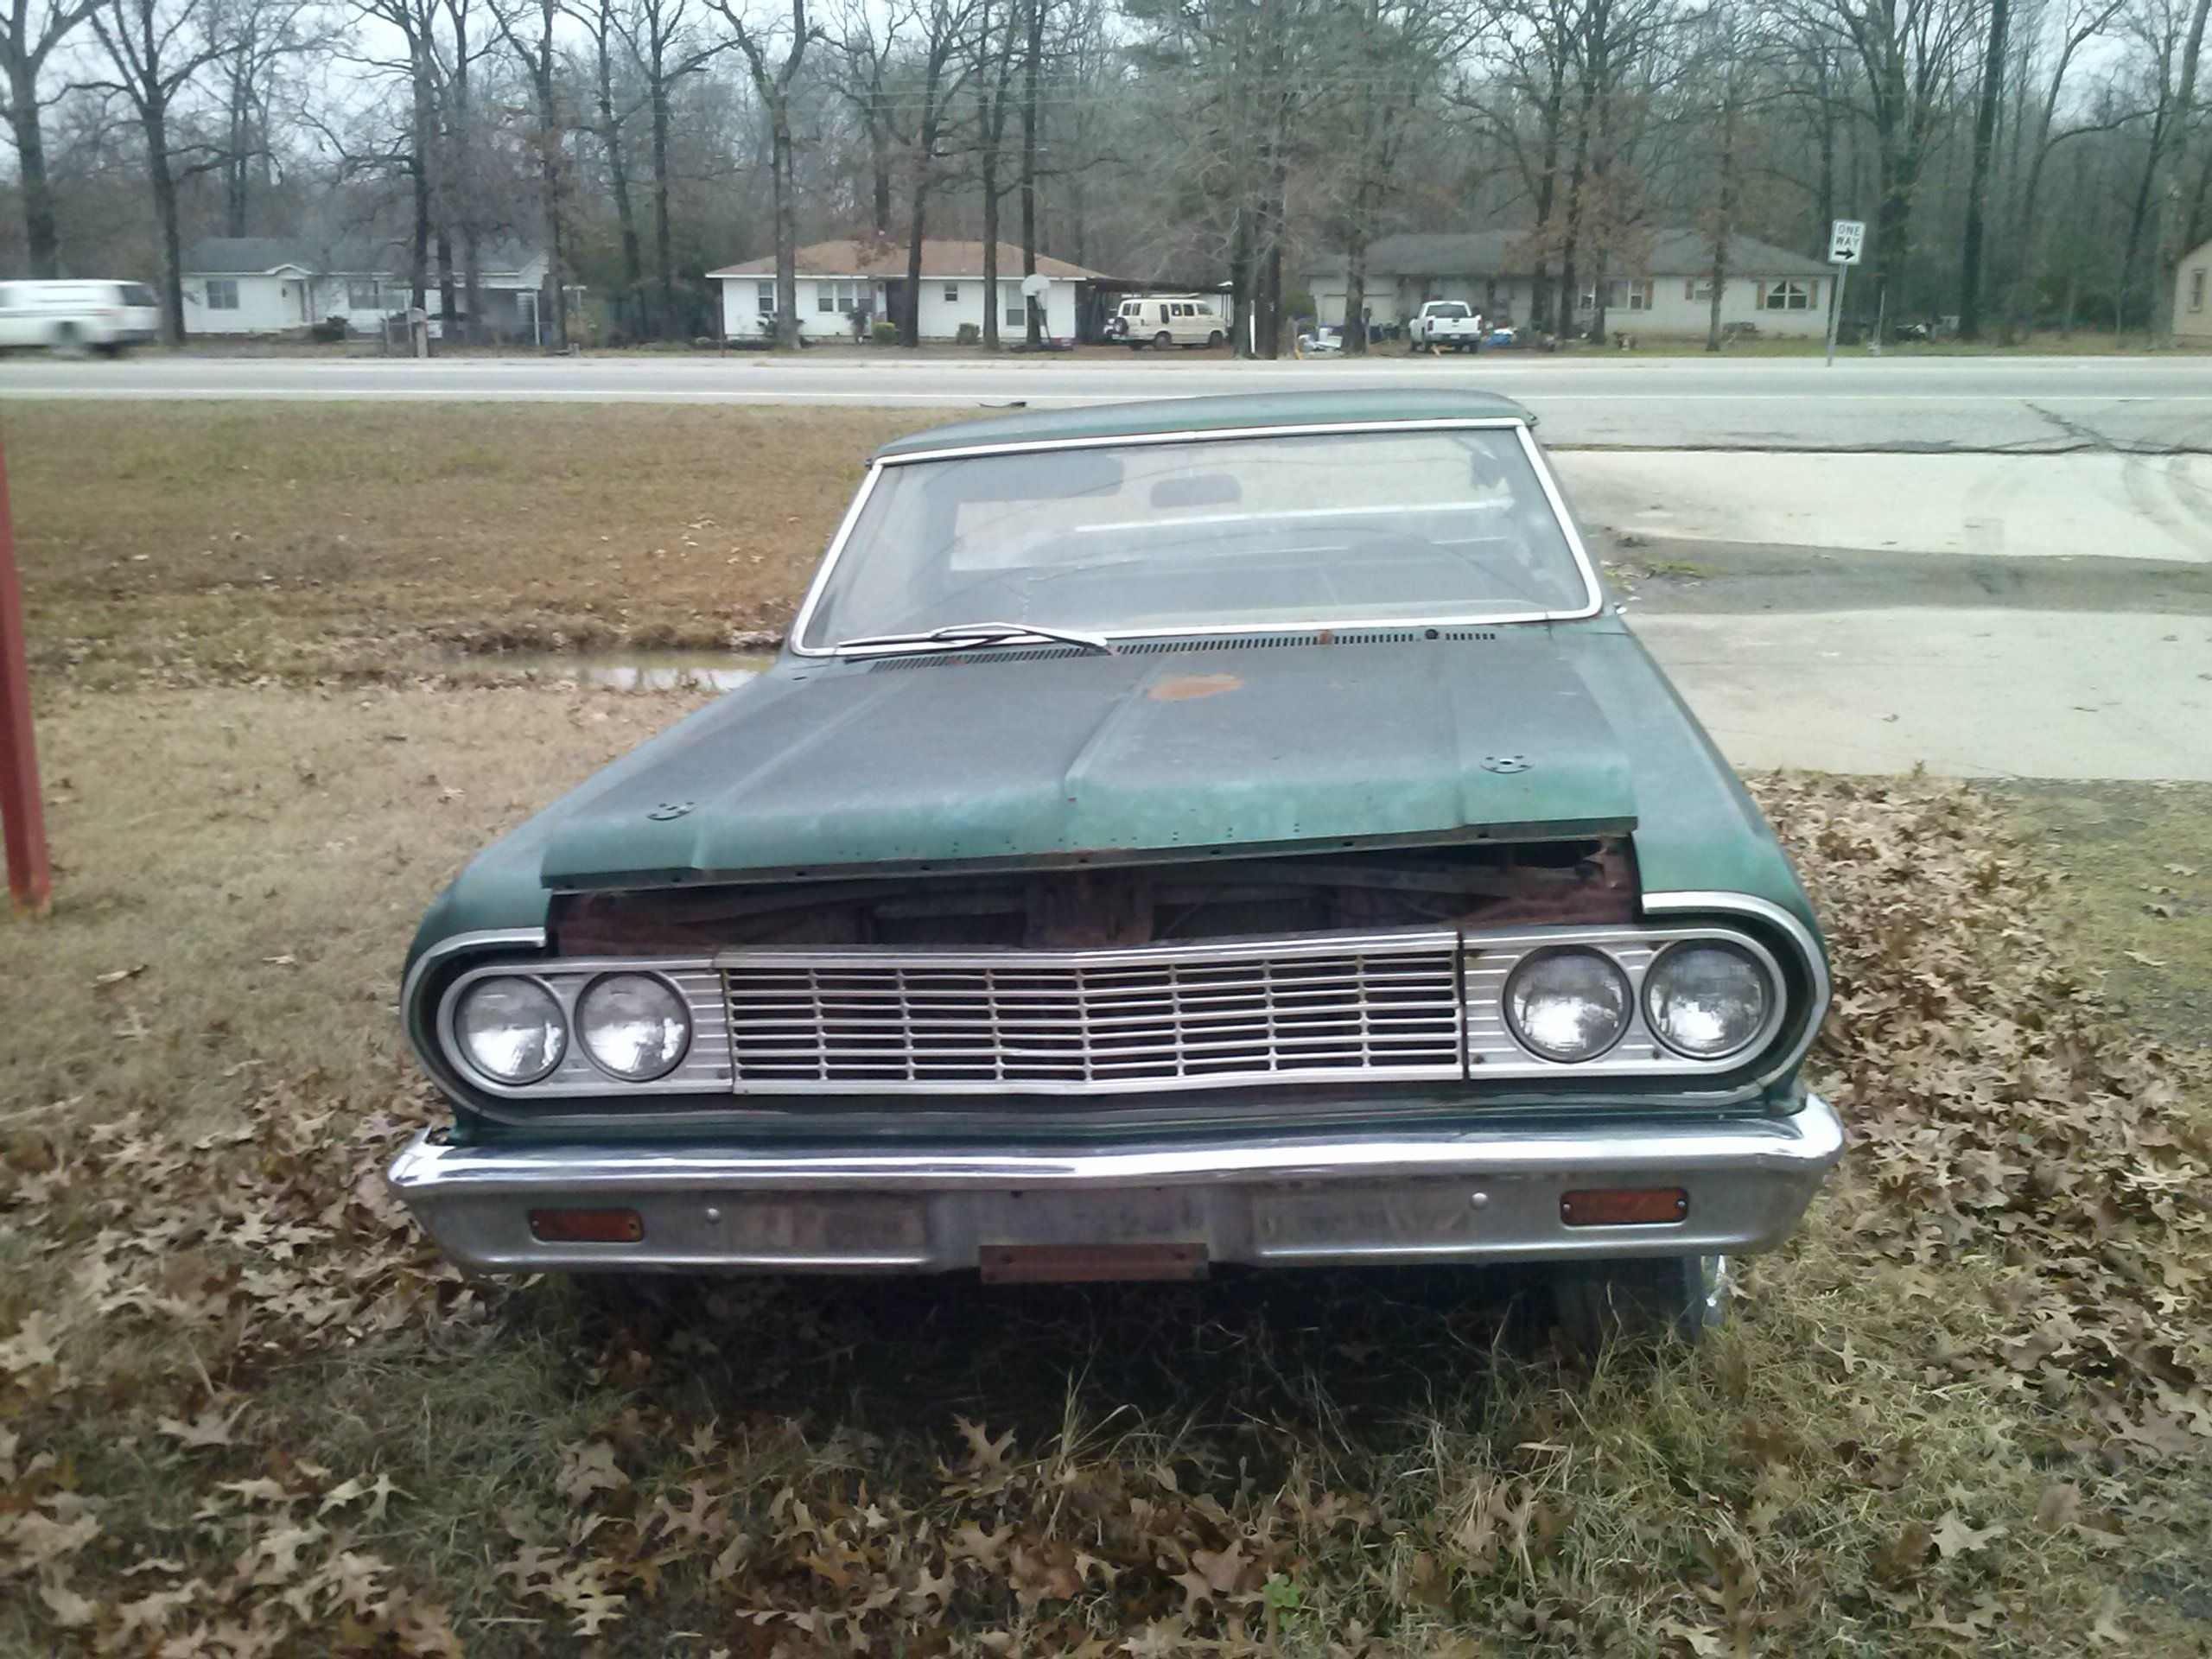 medium resolution of either a 64 or 65 chevy el camino six cylinder engine rusted out floorboards van buren arkansas tripper s travels